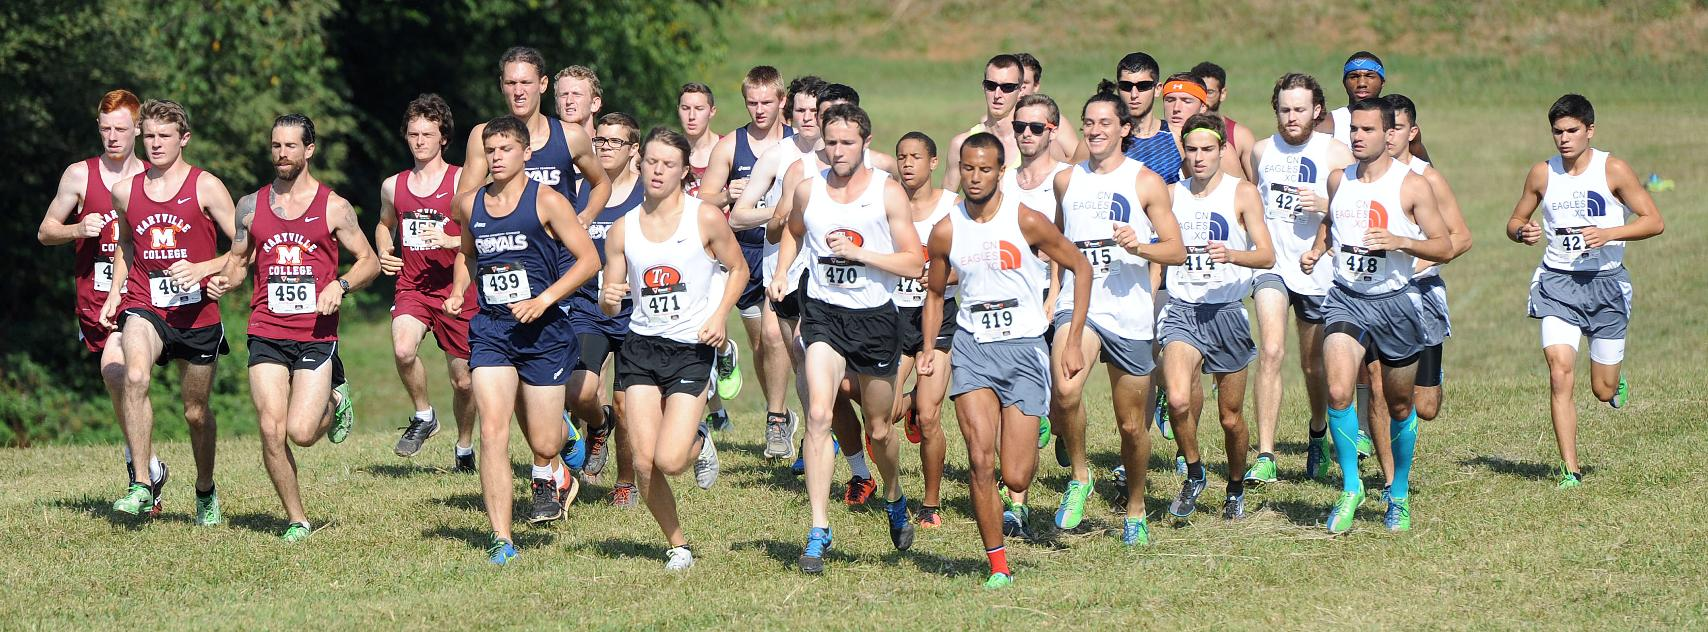 Women claim top-spot, men take second as Eagles compete in Tusculum Open